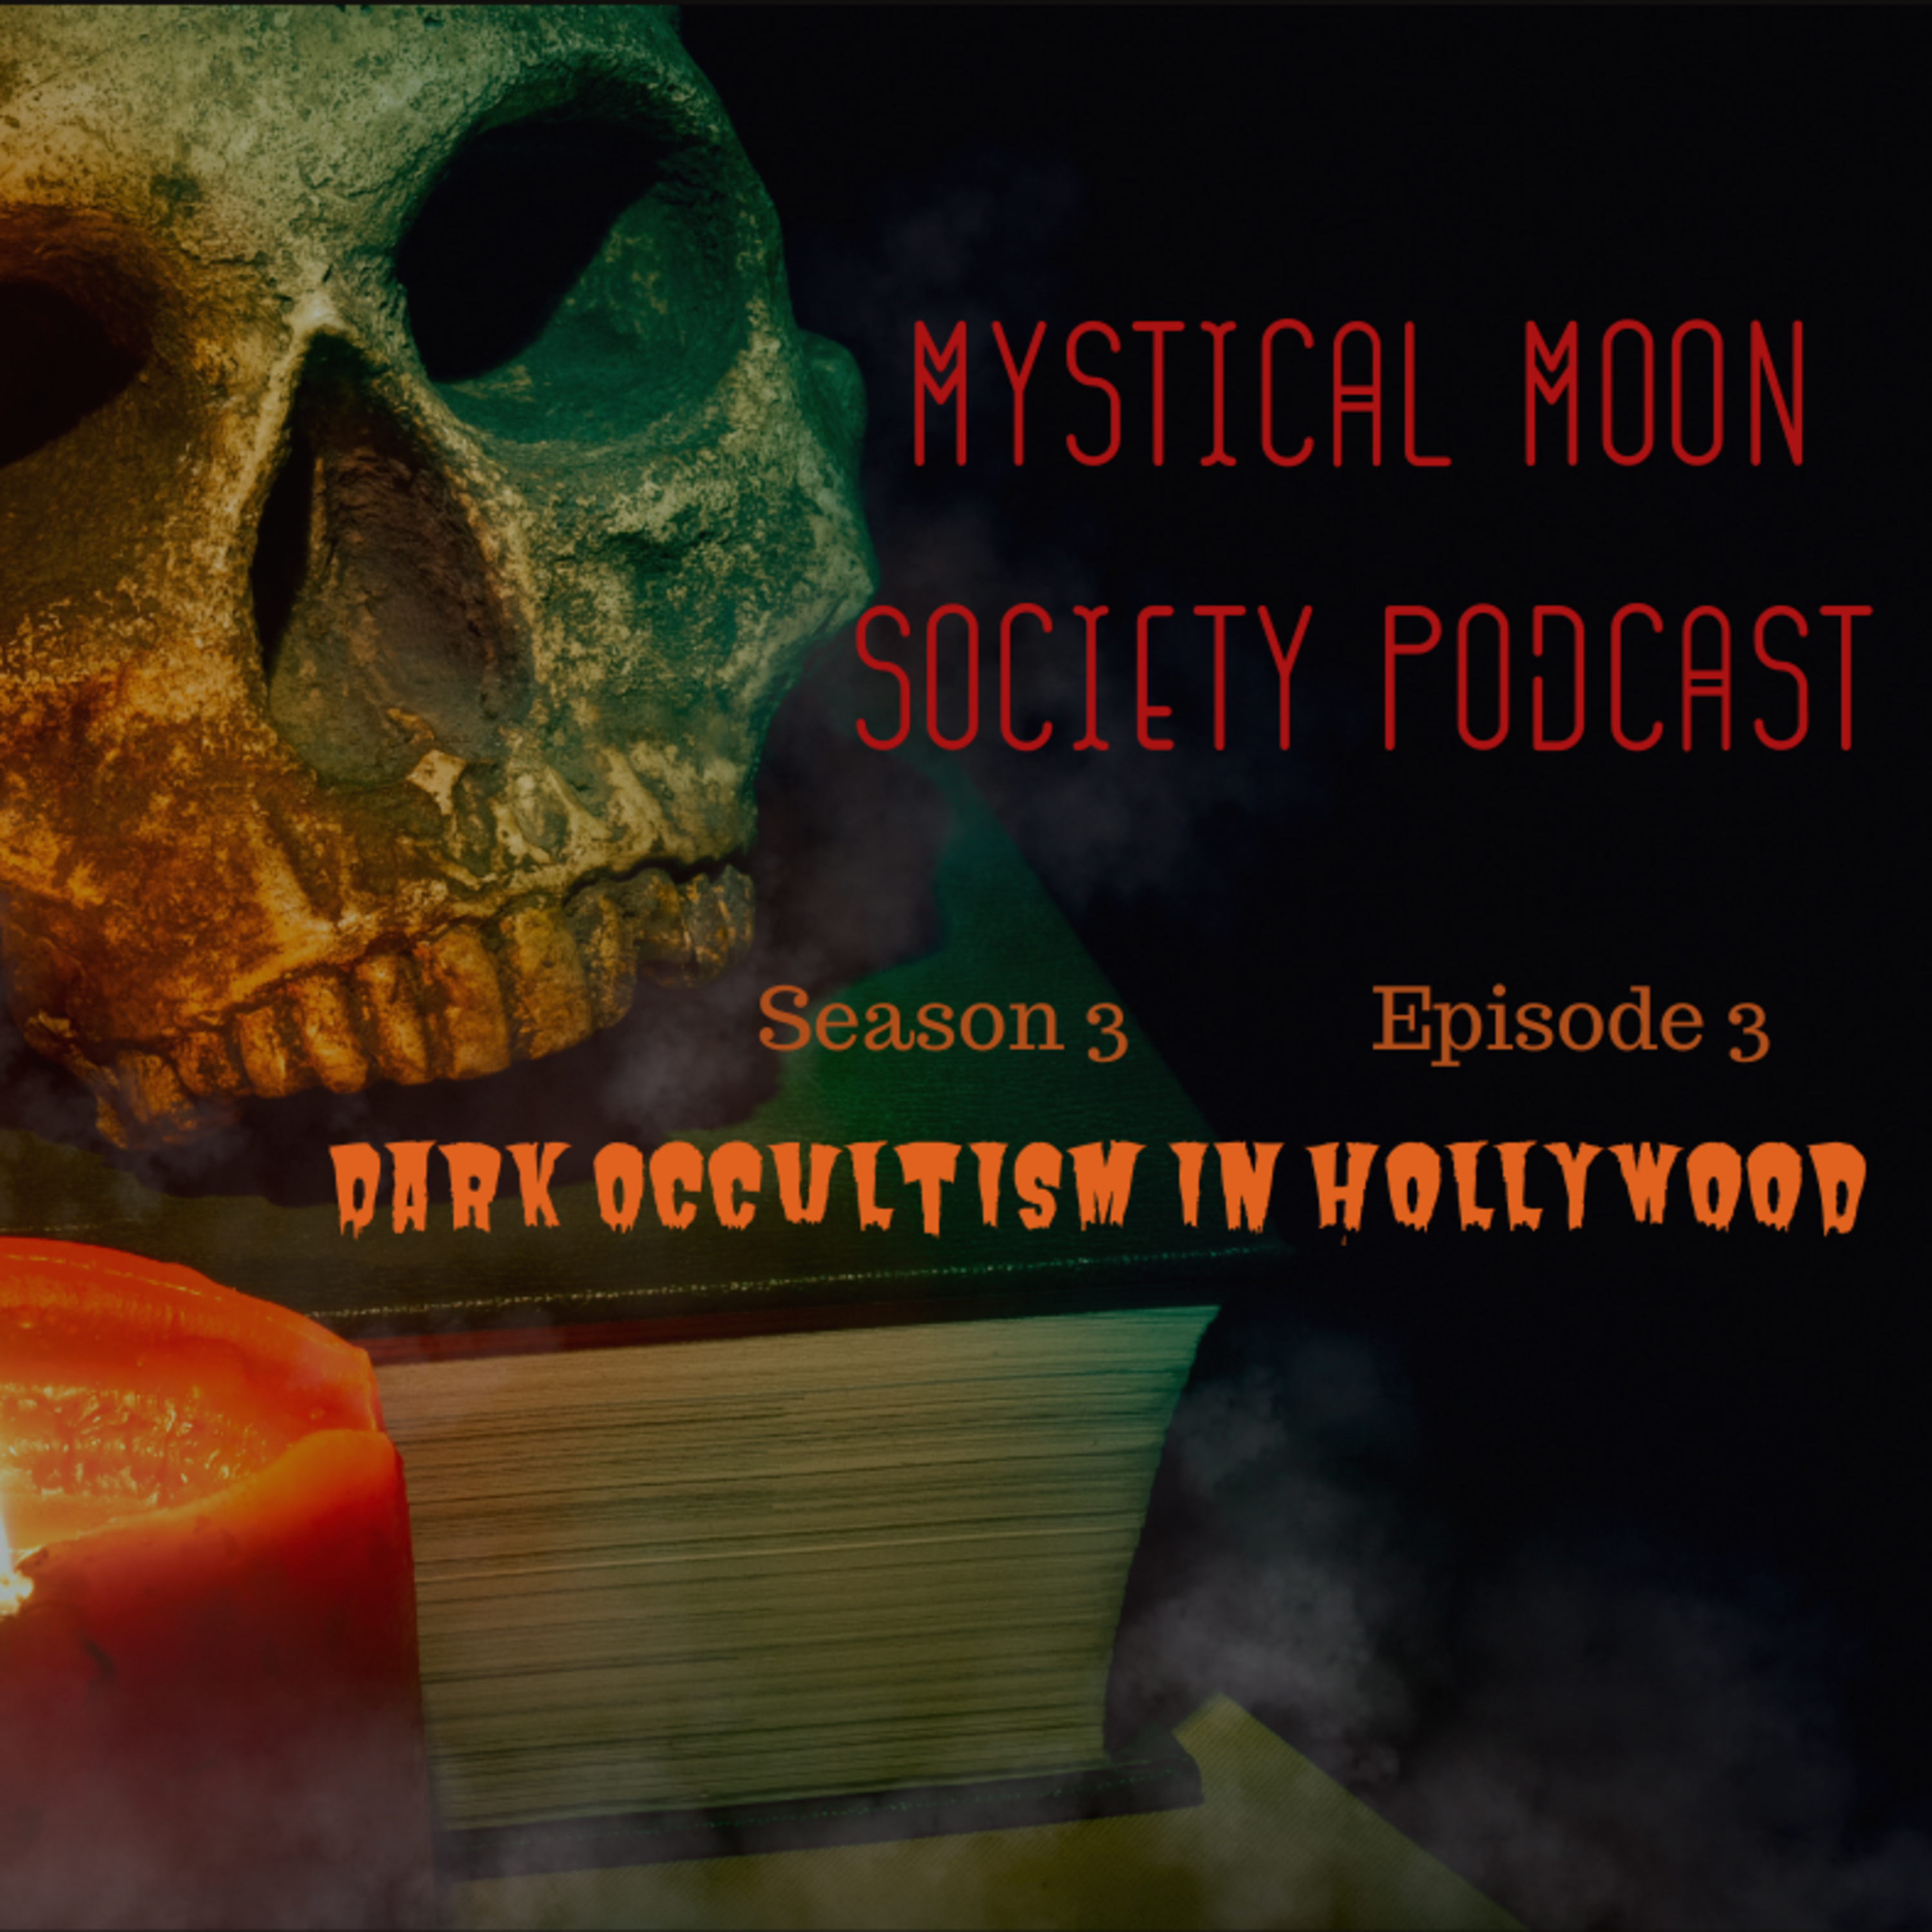 Mystical Moon Society